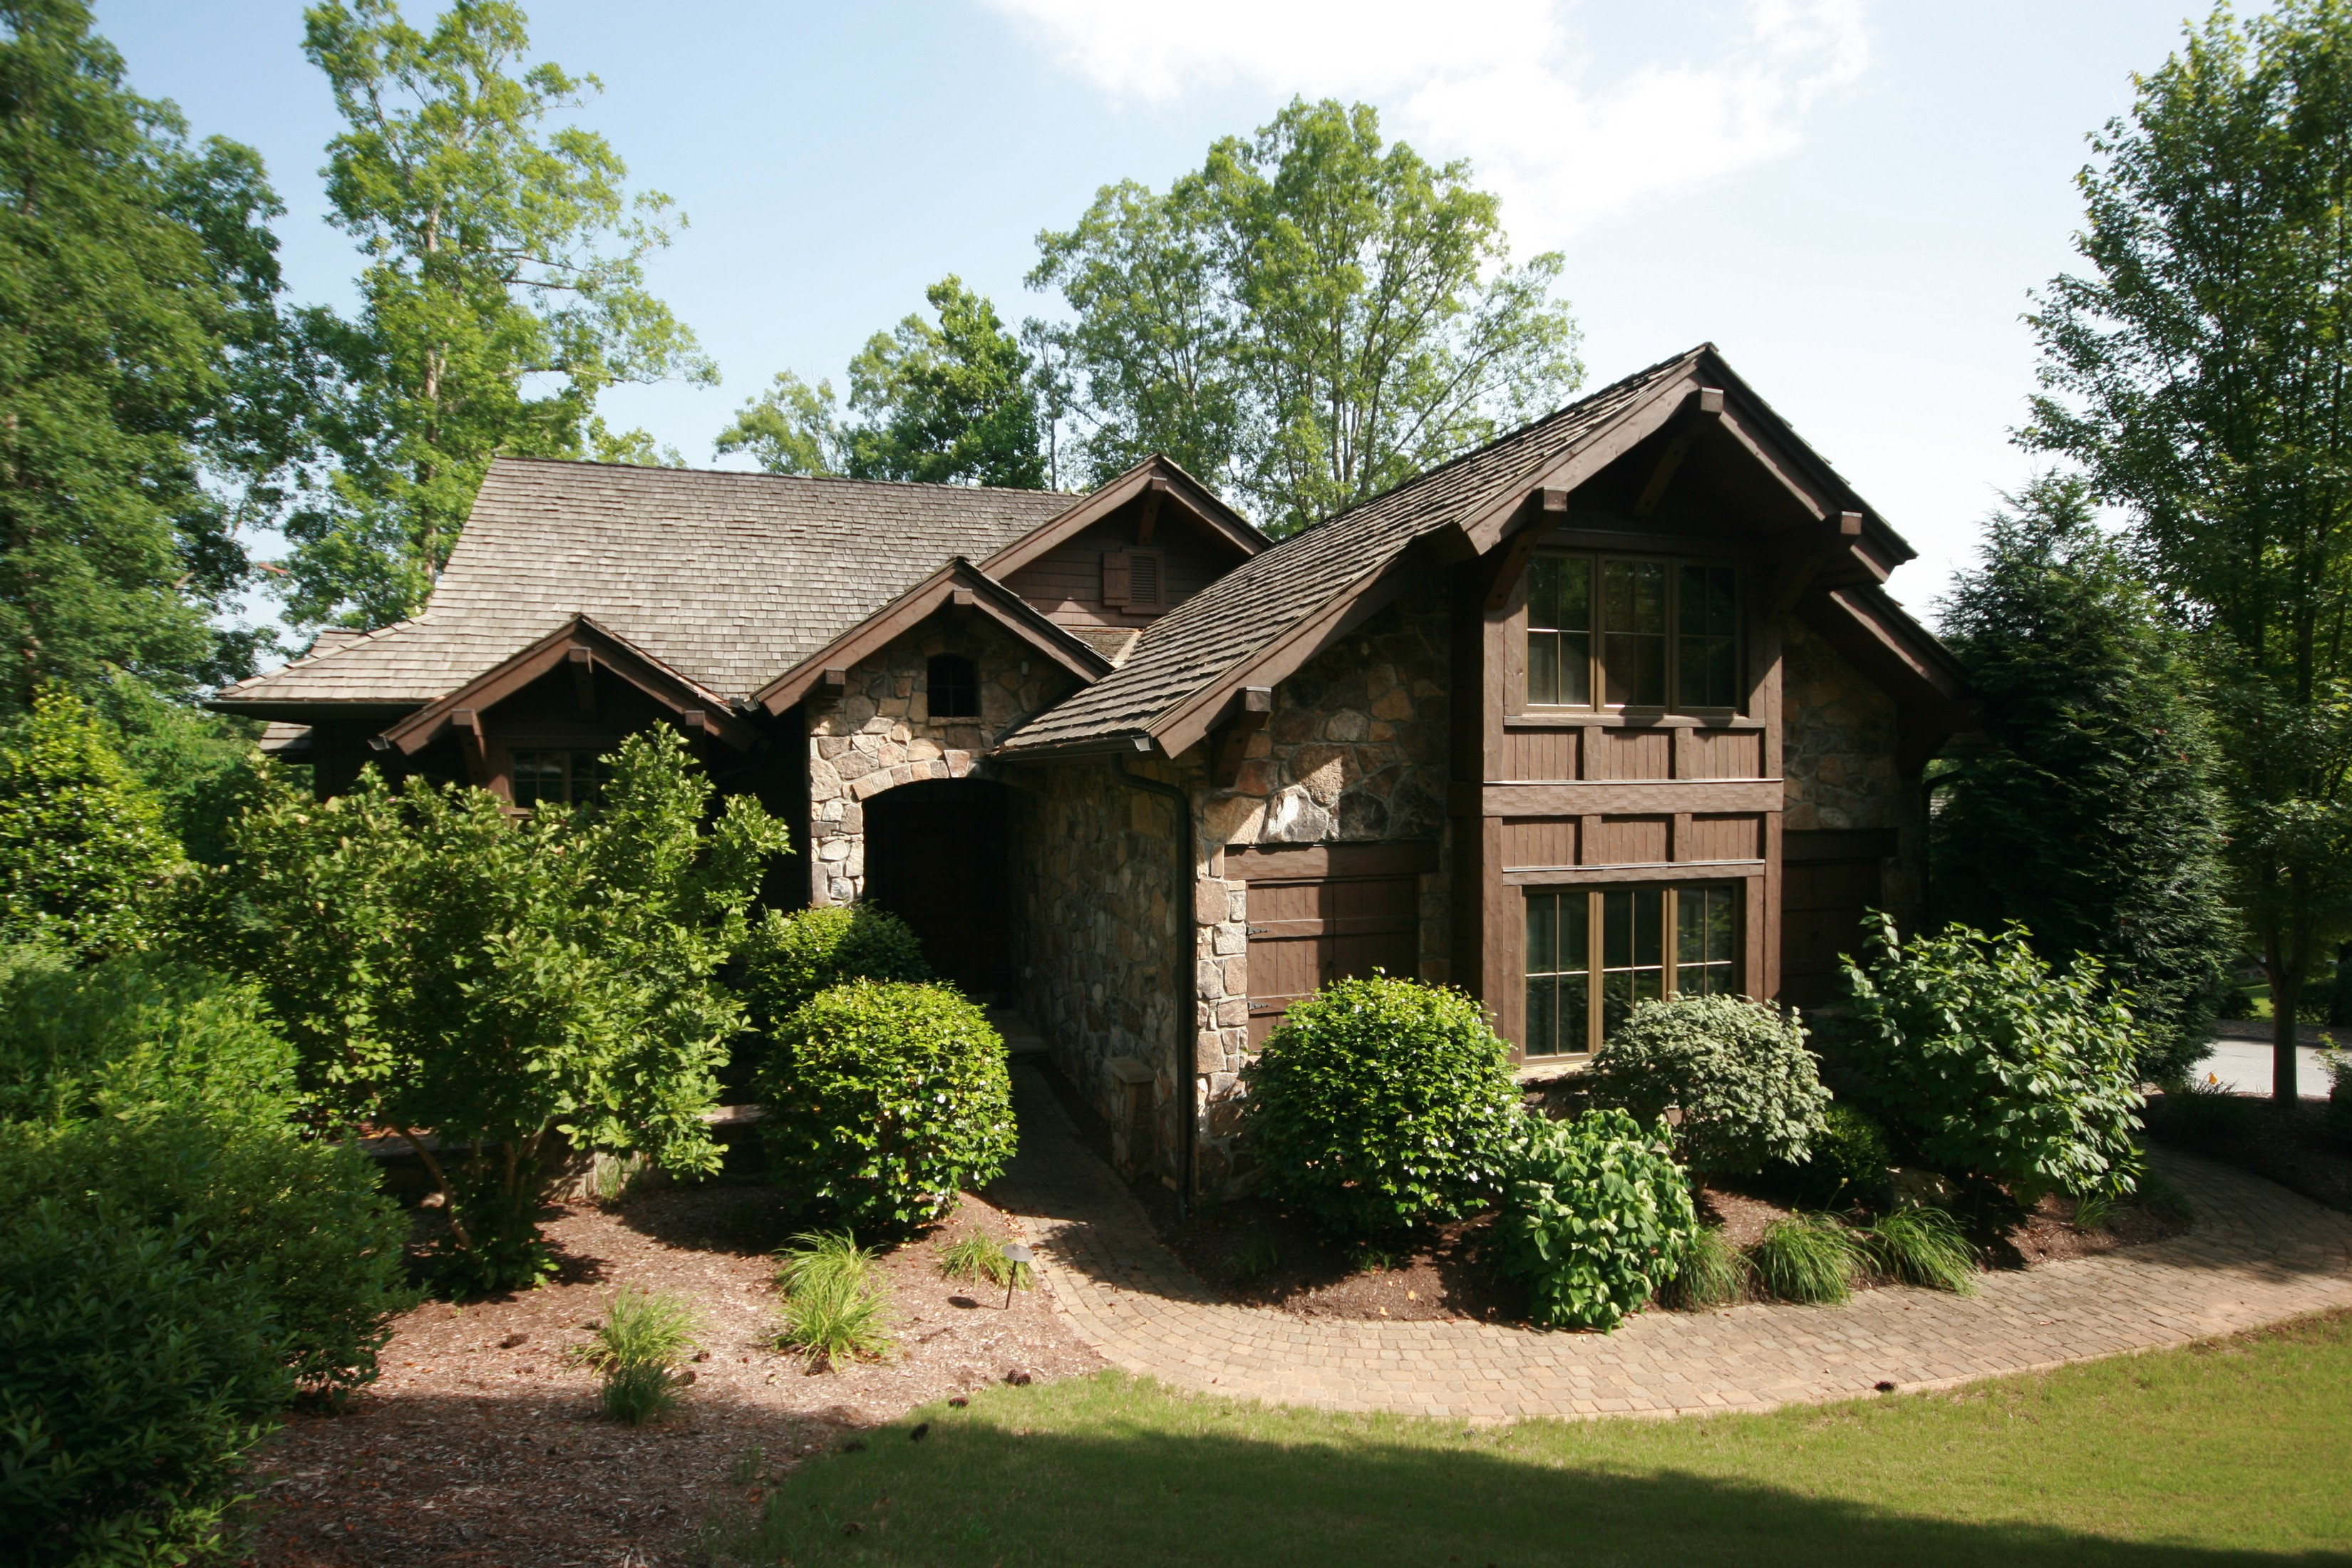 Casa para uma família para Venda às Spectacular Lake Access Home Directly Across Cove from the Waterfall 405 Crossbill Court The Cliffs At Keowee Falls, Salem, Carolina Do Sul, 29676 Estados Unidos